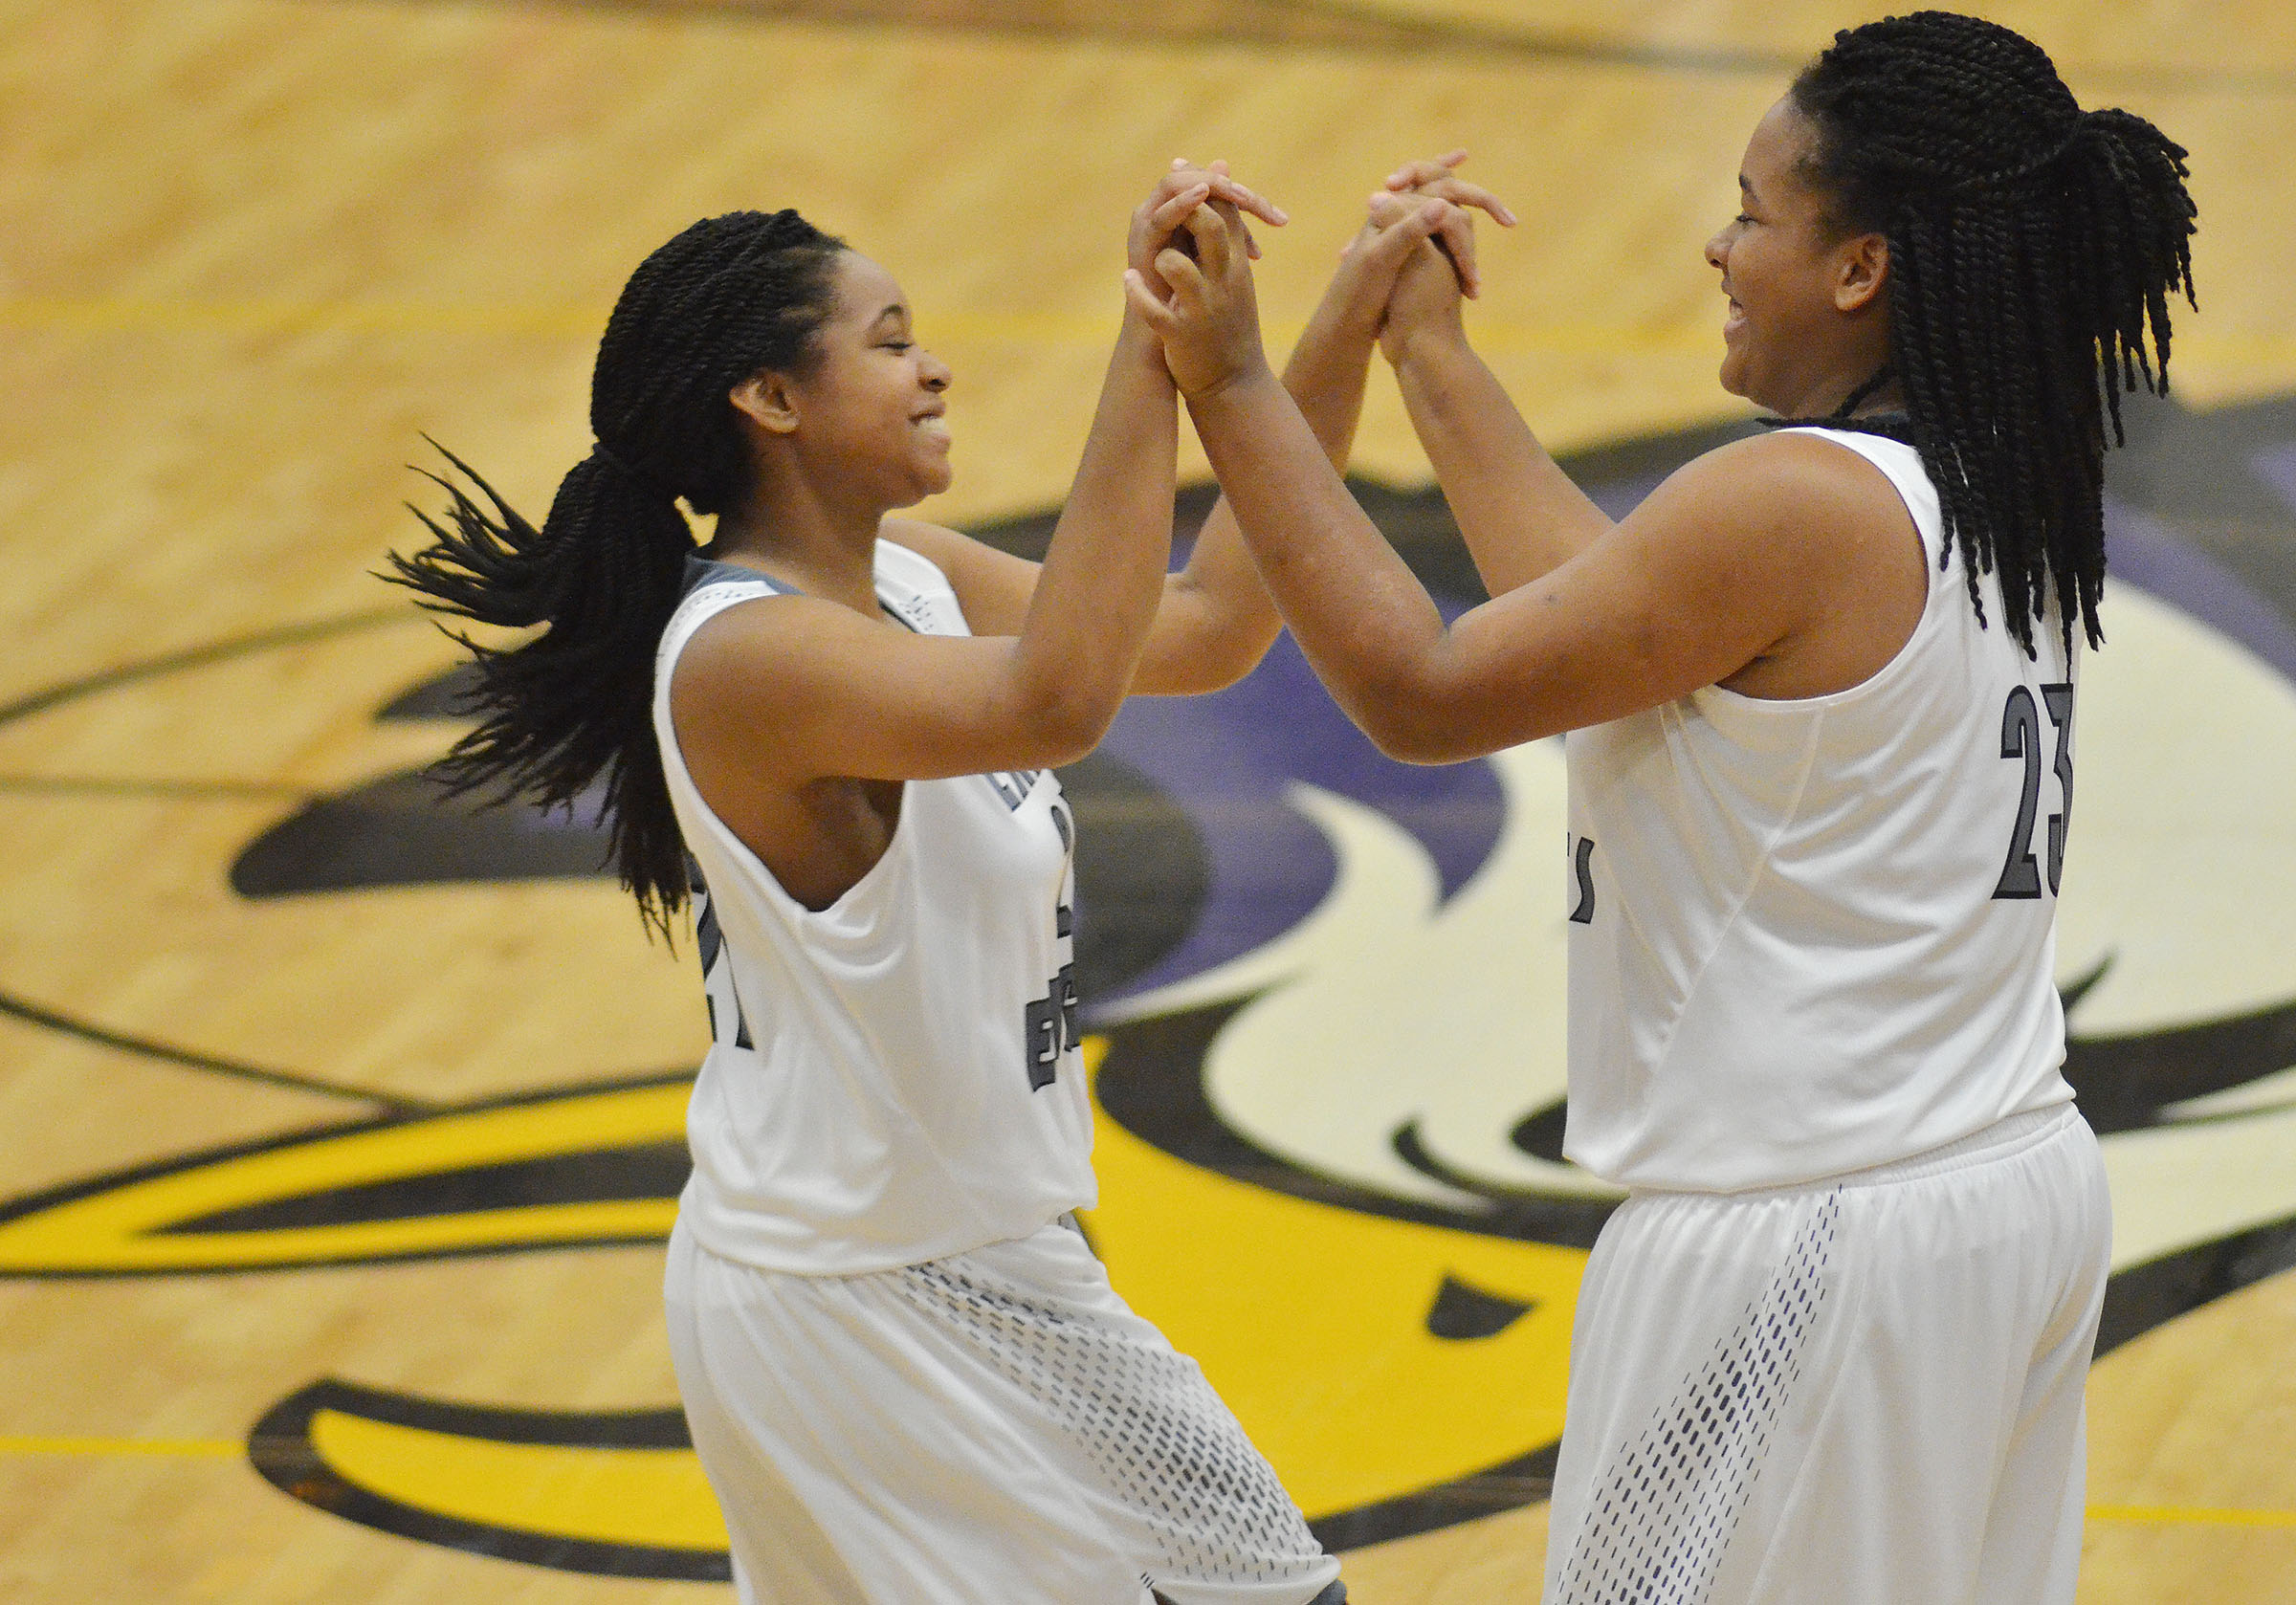 CHS junior Kayla Young, at left, high fives starter Vonnea Smith, also a junior, as she is introduced.